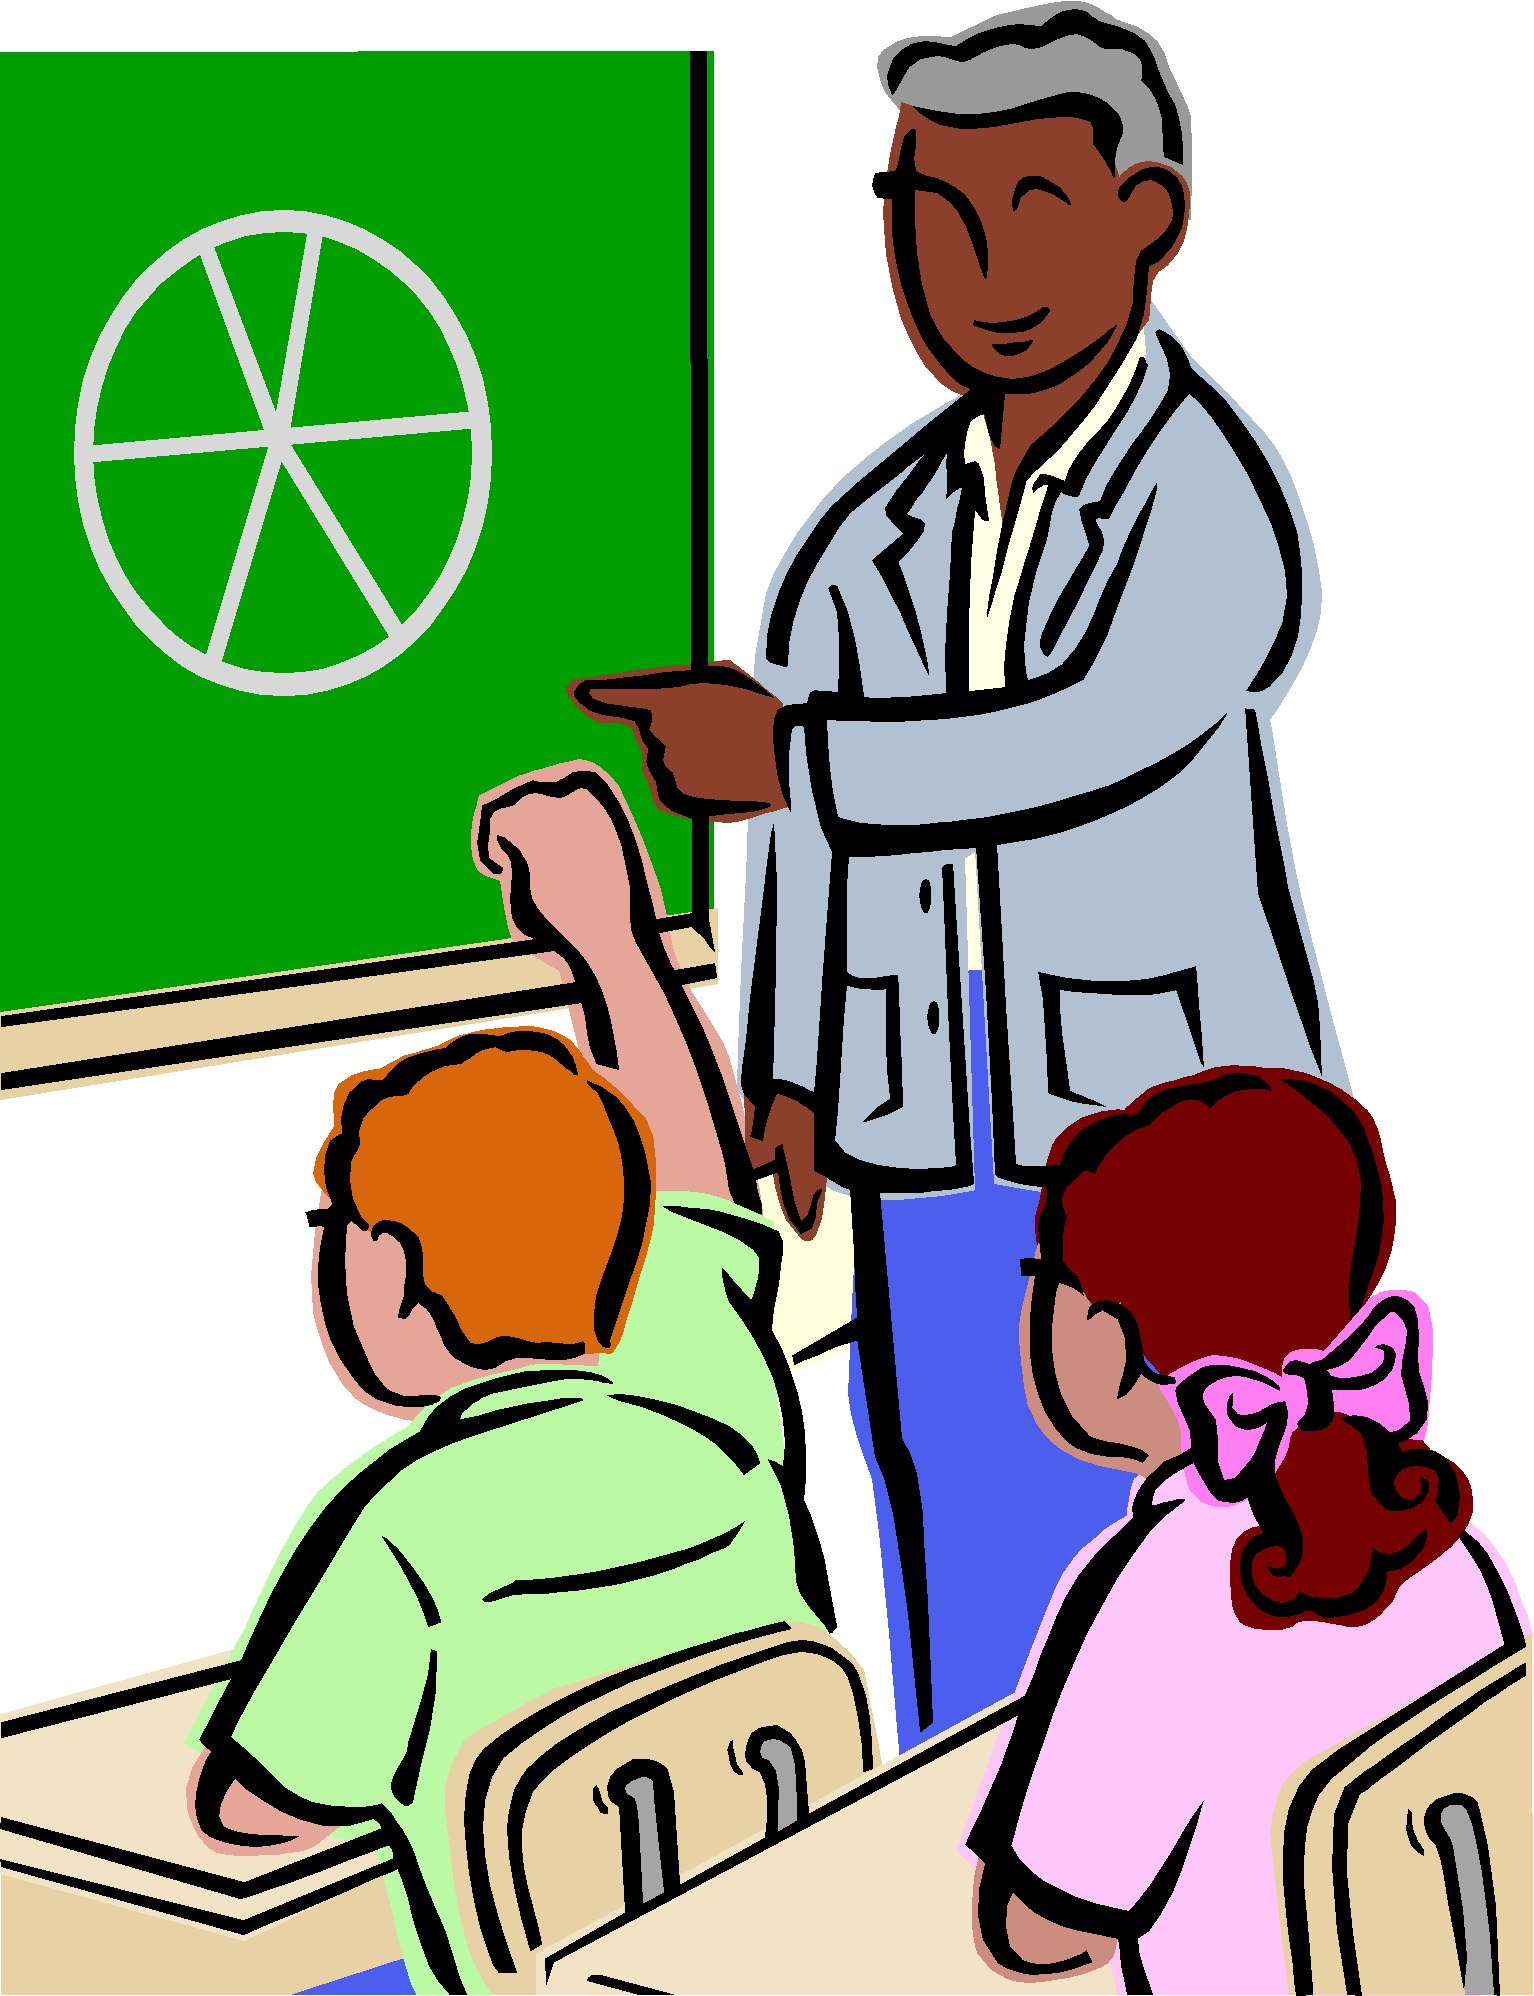 hight resolution of images for teachers meeting clipart